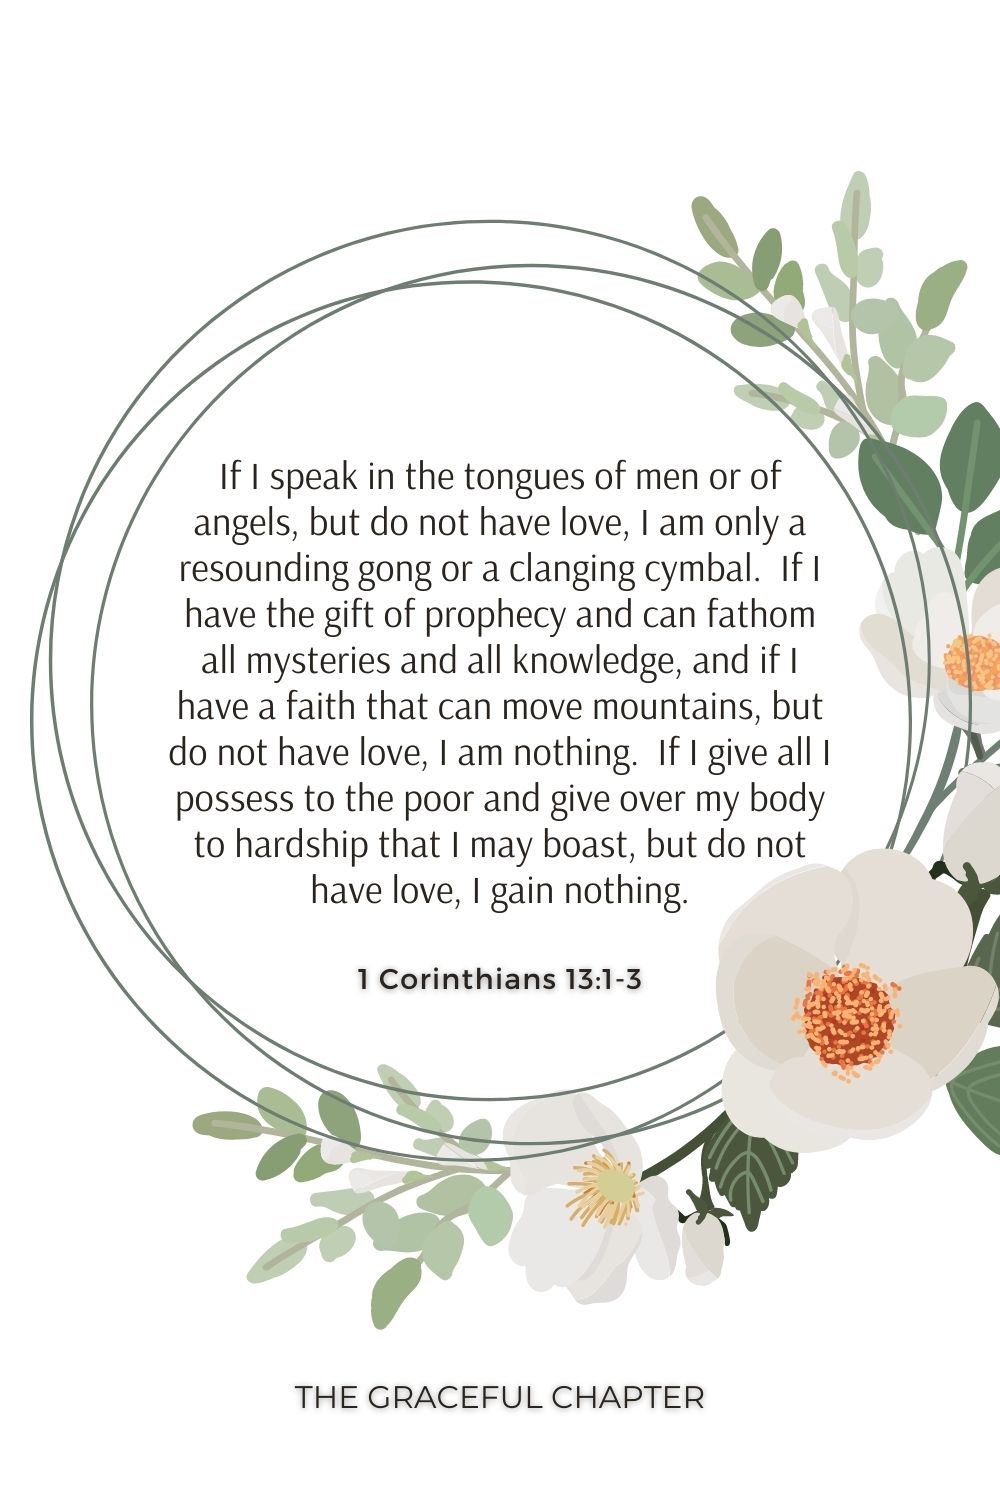 If I speak in the tongues of men or of angels, but do not have love, I am only a resounding gong or a clanging cymbal.  If I have the gift of prophecy and can fathom all mysteries and all knowledge, and if I have a faith that can move mountains, but do not have love, I am nothing.  If I give all I possess to the poor and give over my body to hardship that I may boast, but do not have love, I gain nothing. 1 Corinthians 13:1-3